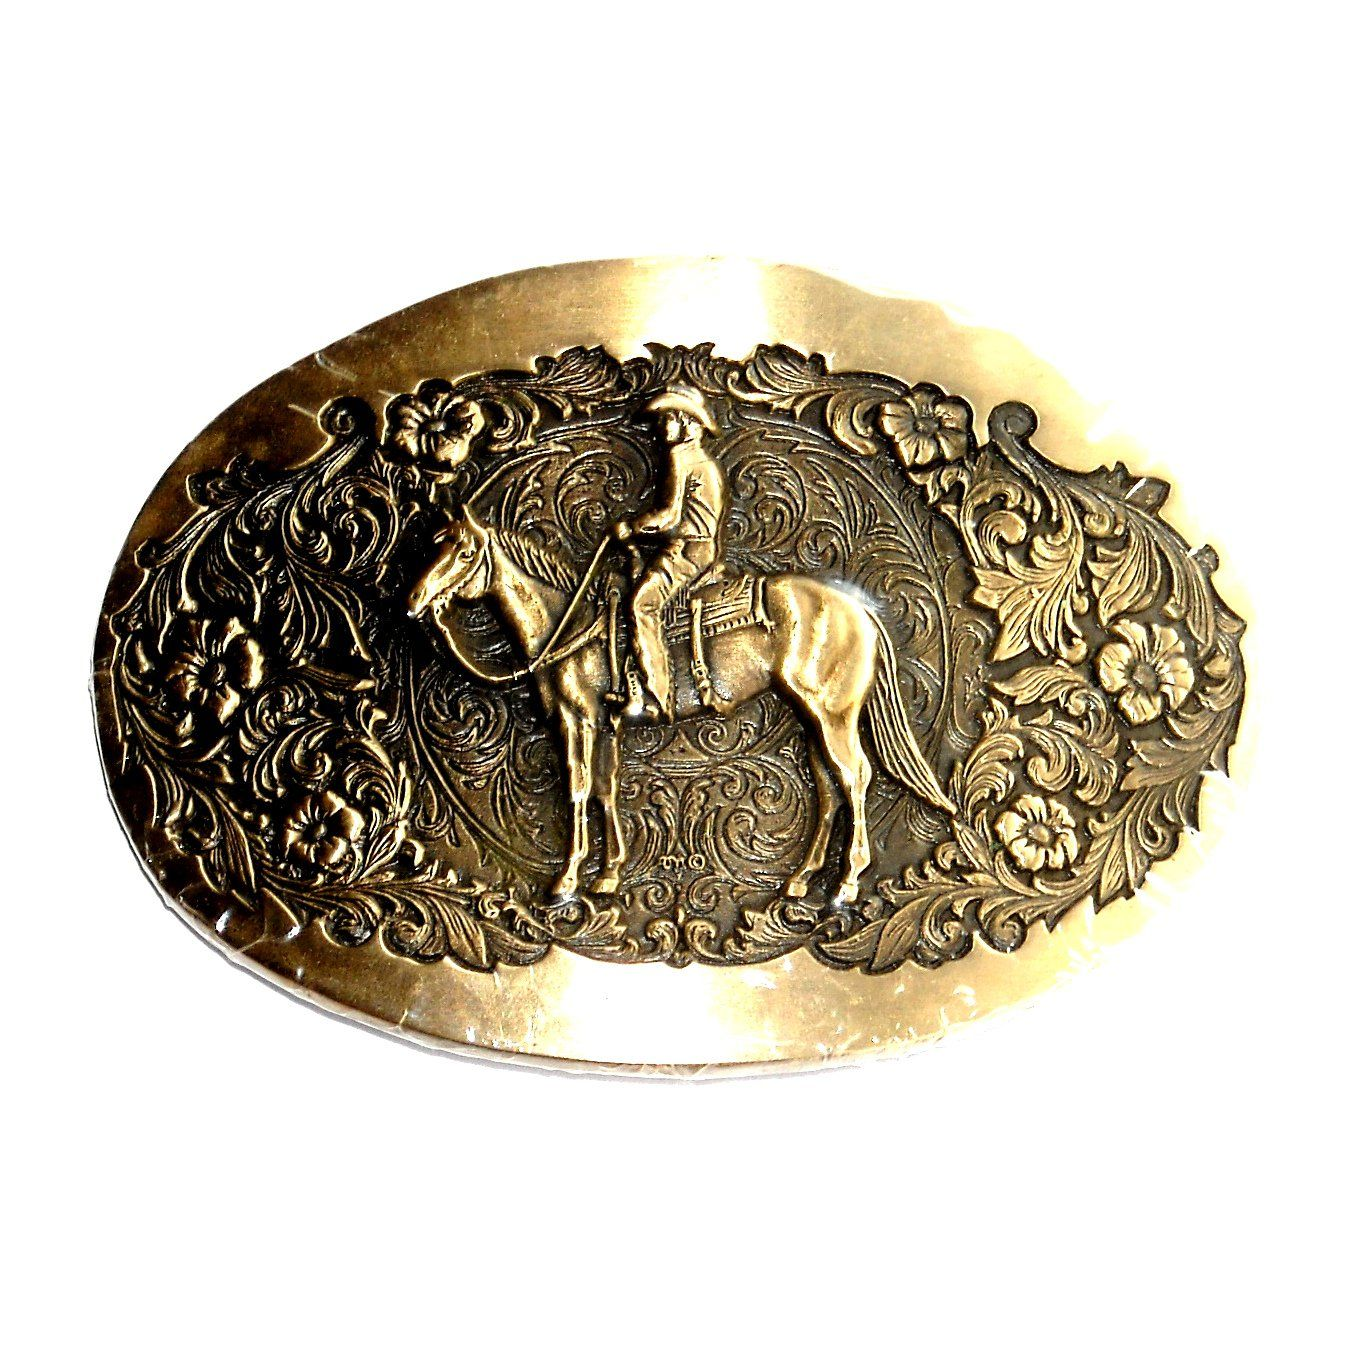 Country Western Flair Cowboy Cowgirl Gift Art German Silver Brass Engraved Etched Handmade 1980s Vintage Belt Buckle